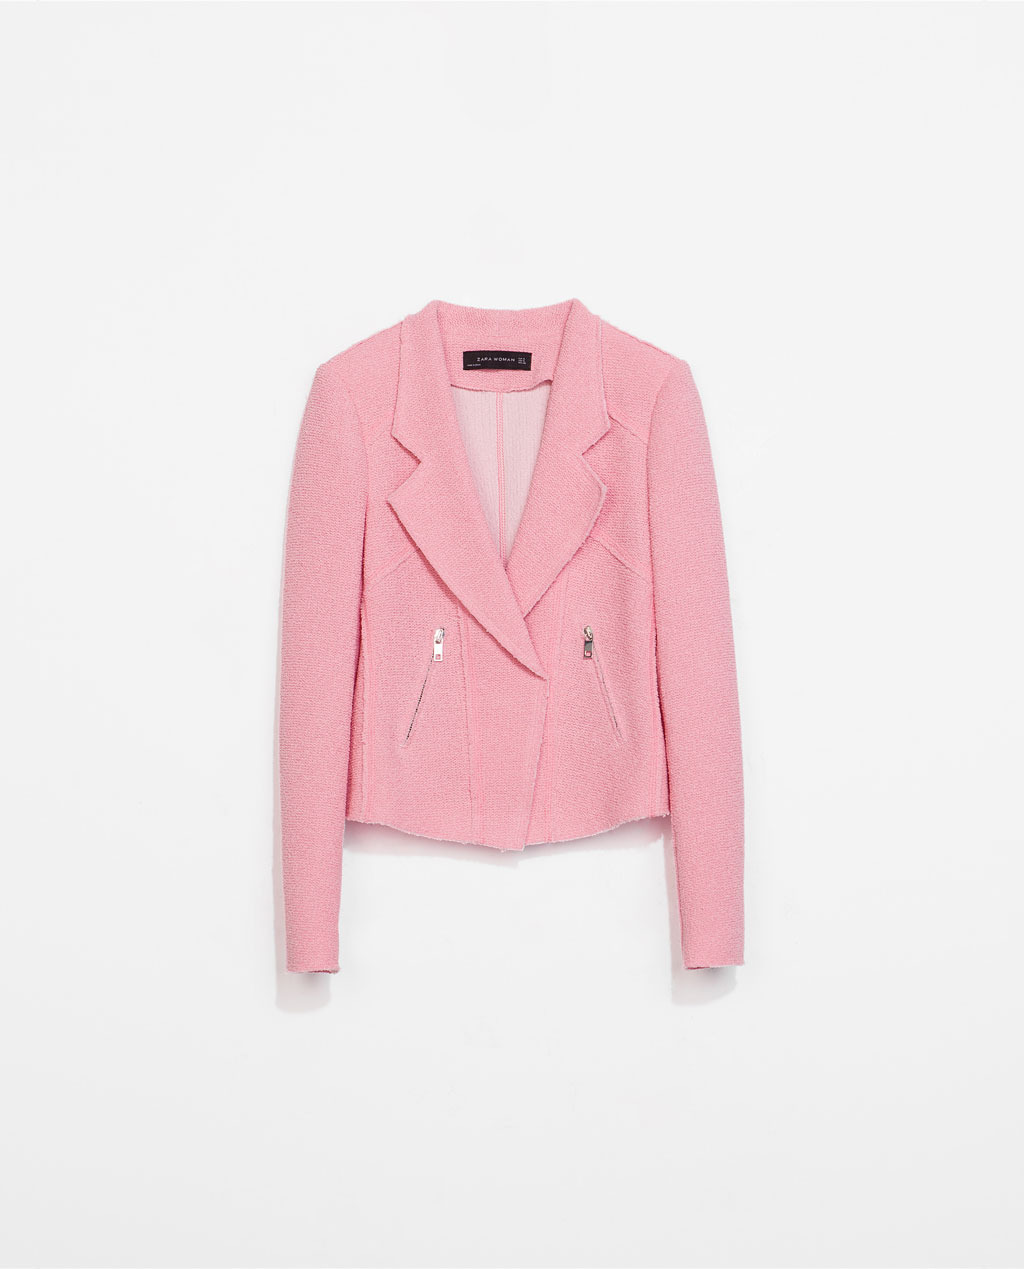 Biker Jacket - pattern: plain; style: single breasted blazer; fit: slim fit; collar: standard lapel/rever collar; predominant colour: pink; occasions: casual, evening, creative work; length: standard; fibres: cotton - mix; sleeve length: long sleeve; sleeve style: standard; collar break: low/open; pattern type: fabric; texture group: tweed - light/midweight; season: s/s 2014